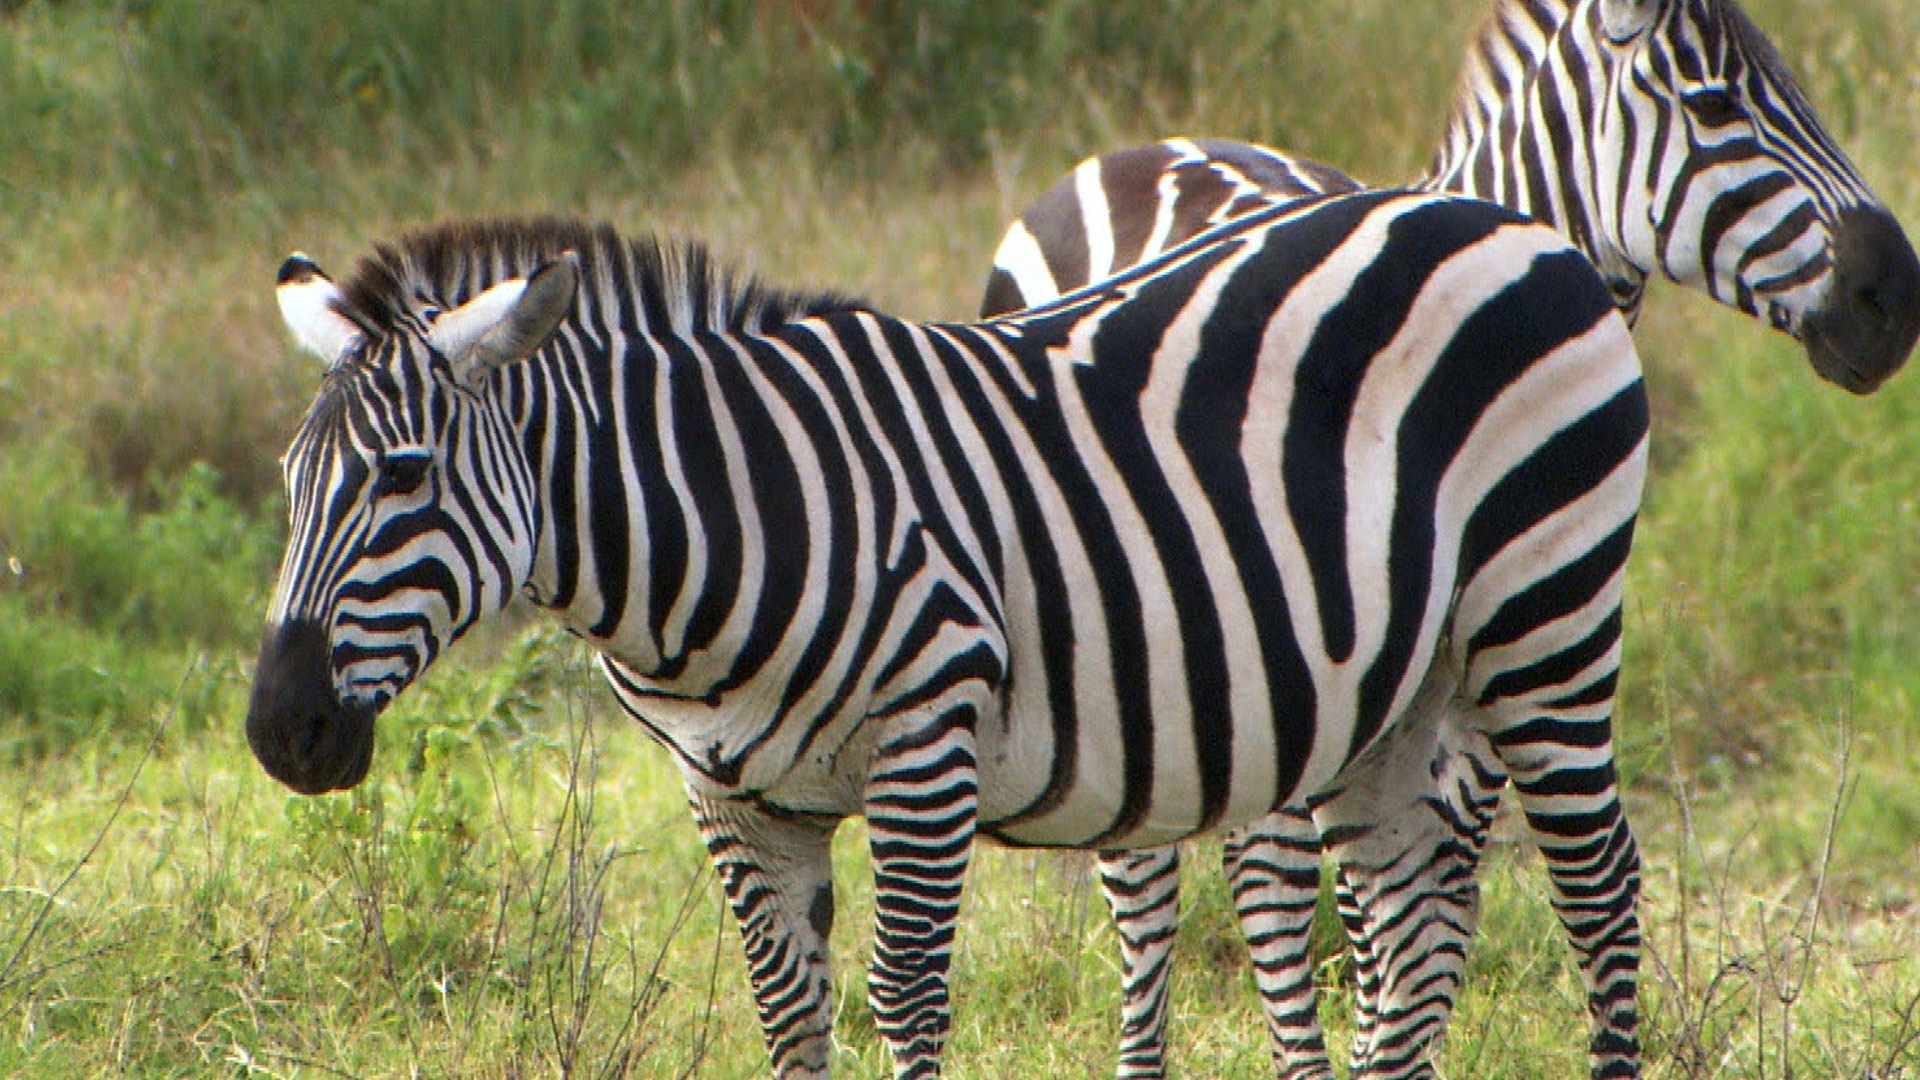 'The Quick and the Curious': Are Zebras Black or White?